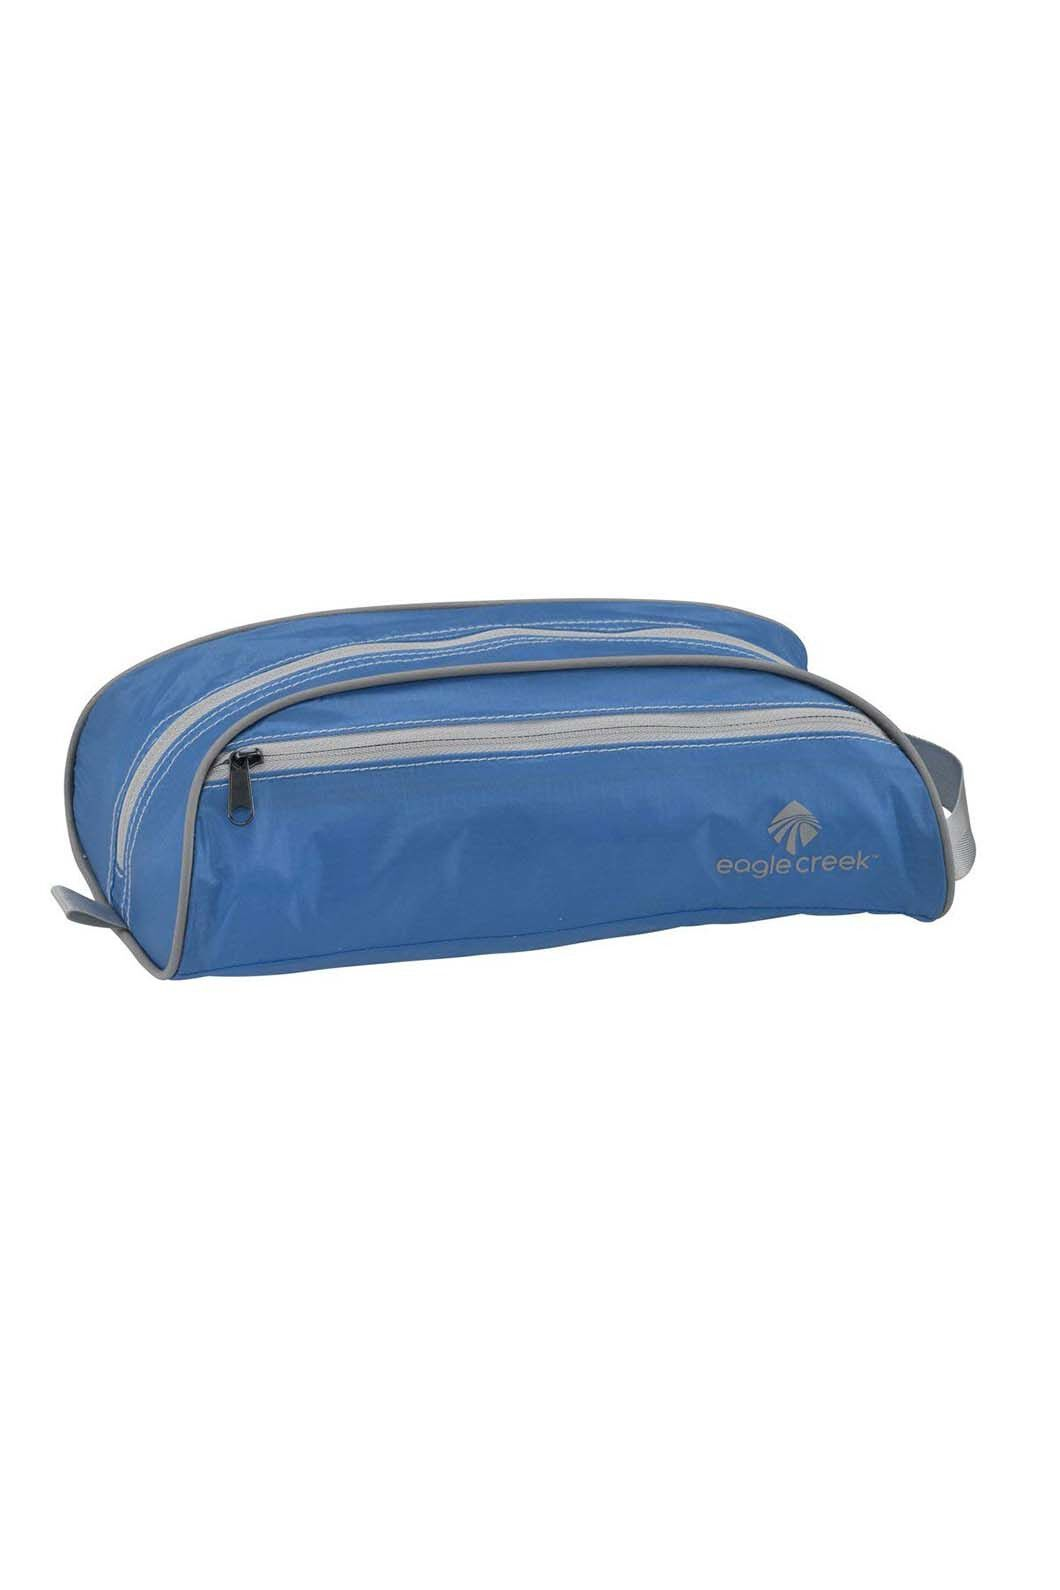 Eagle Creek Pack-It Specter Quick Trip Strobe, Brilliant Blue, hi-res